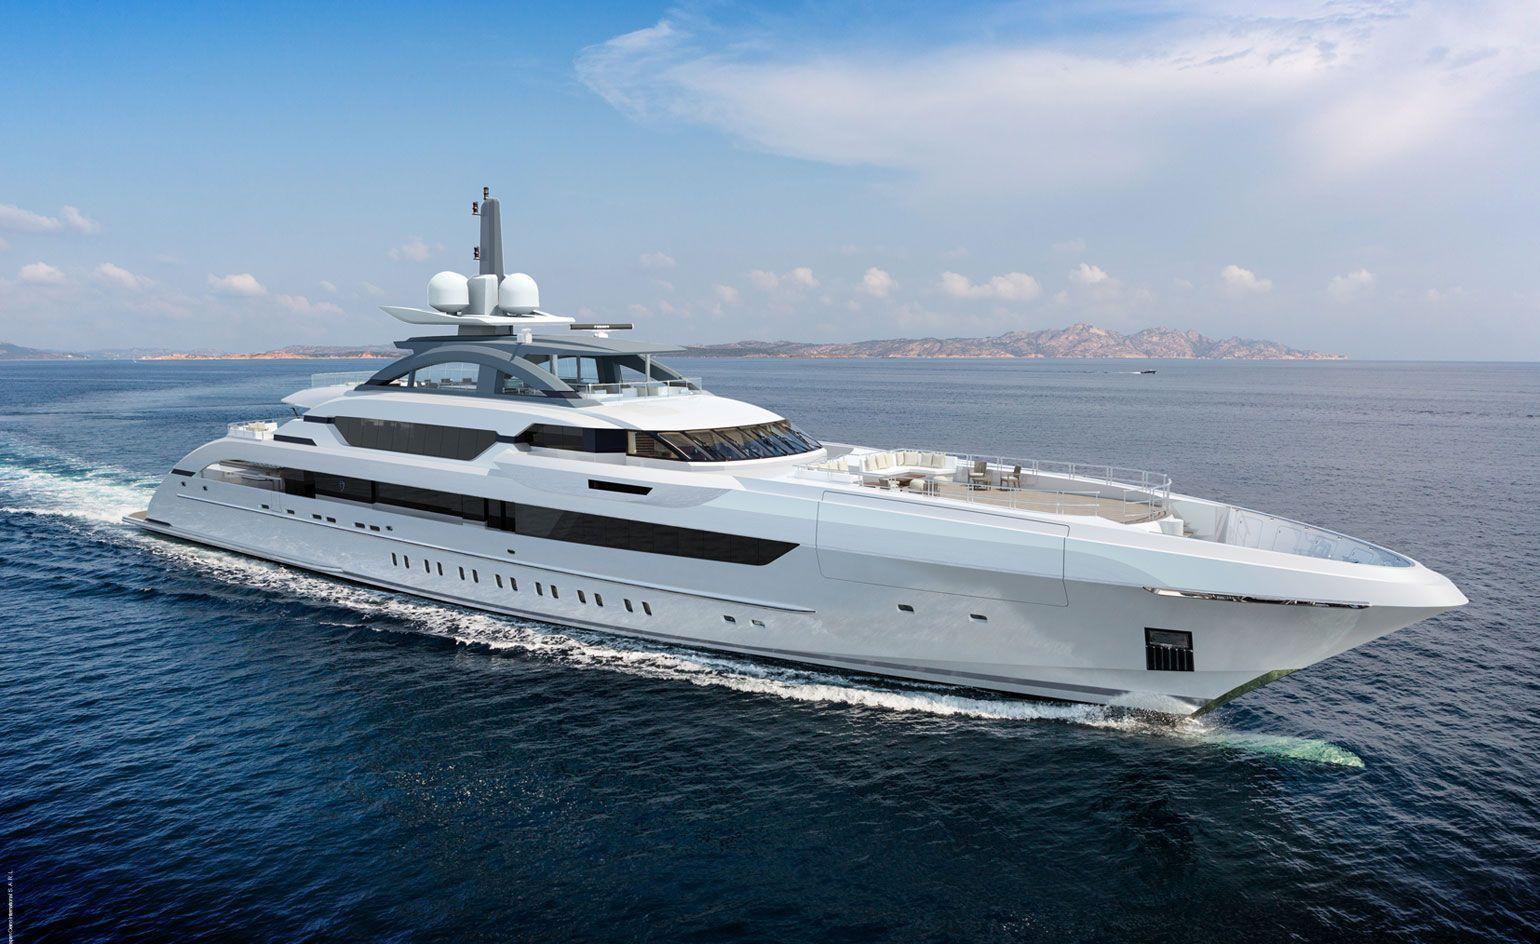 Monaco Yacht Show 2014: the best new boats and concepts